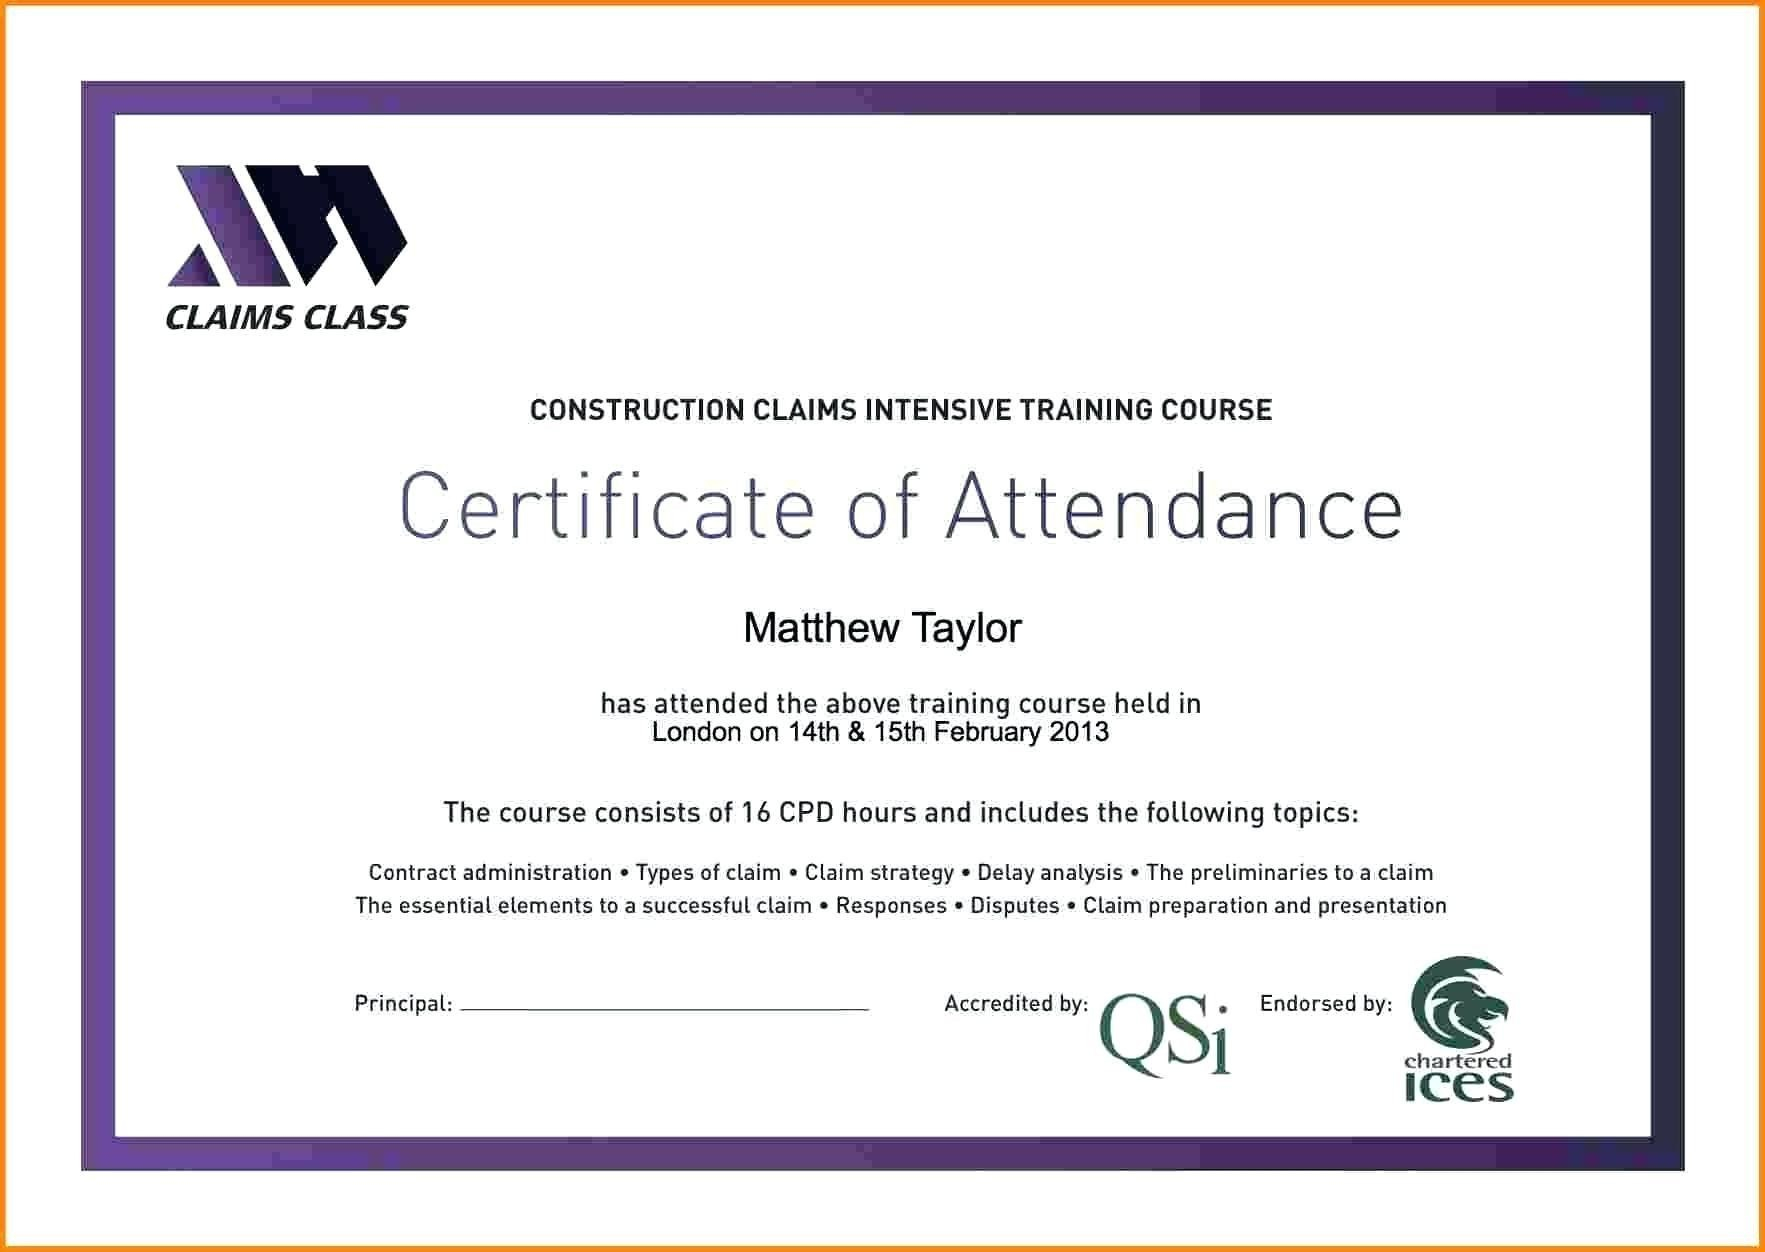 Attendance Certificate Template Word Free  Certificatetemplateword With Regard To Perfect Attendance Certificate Template